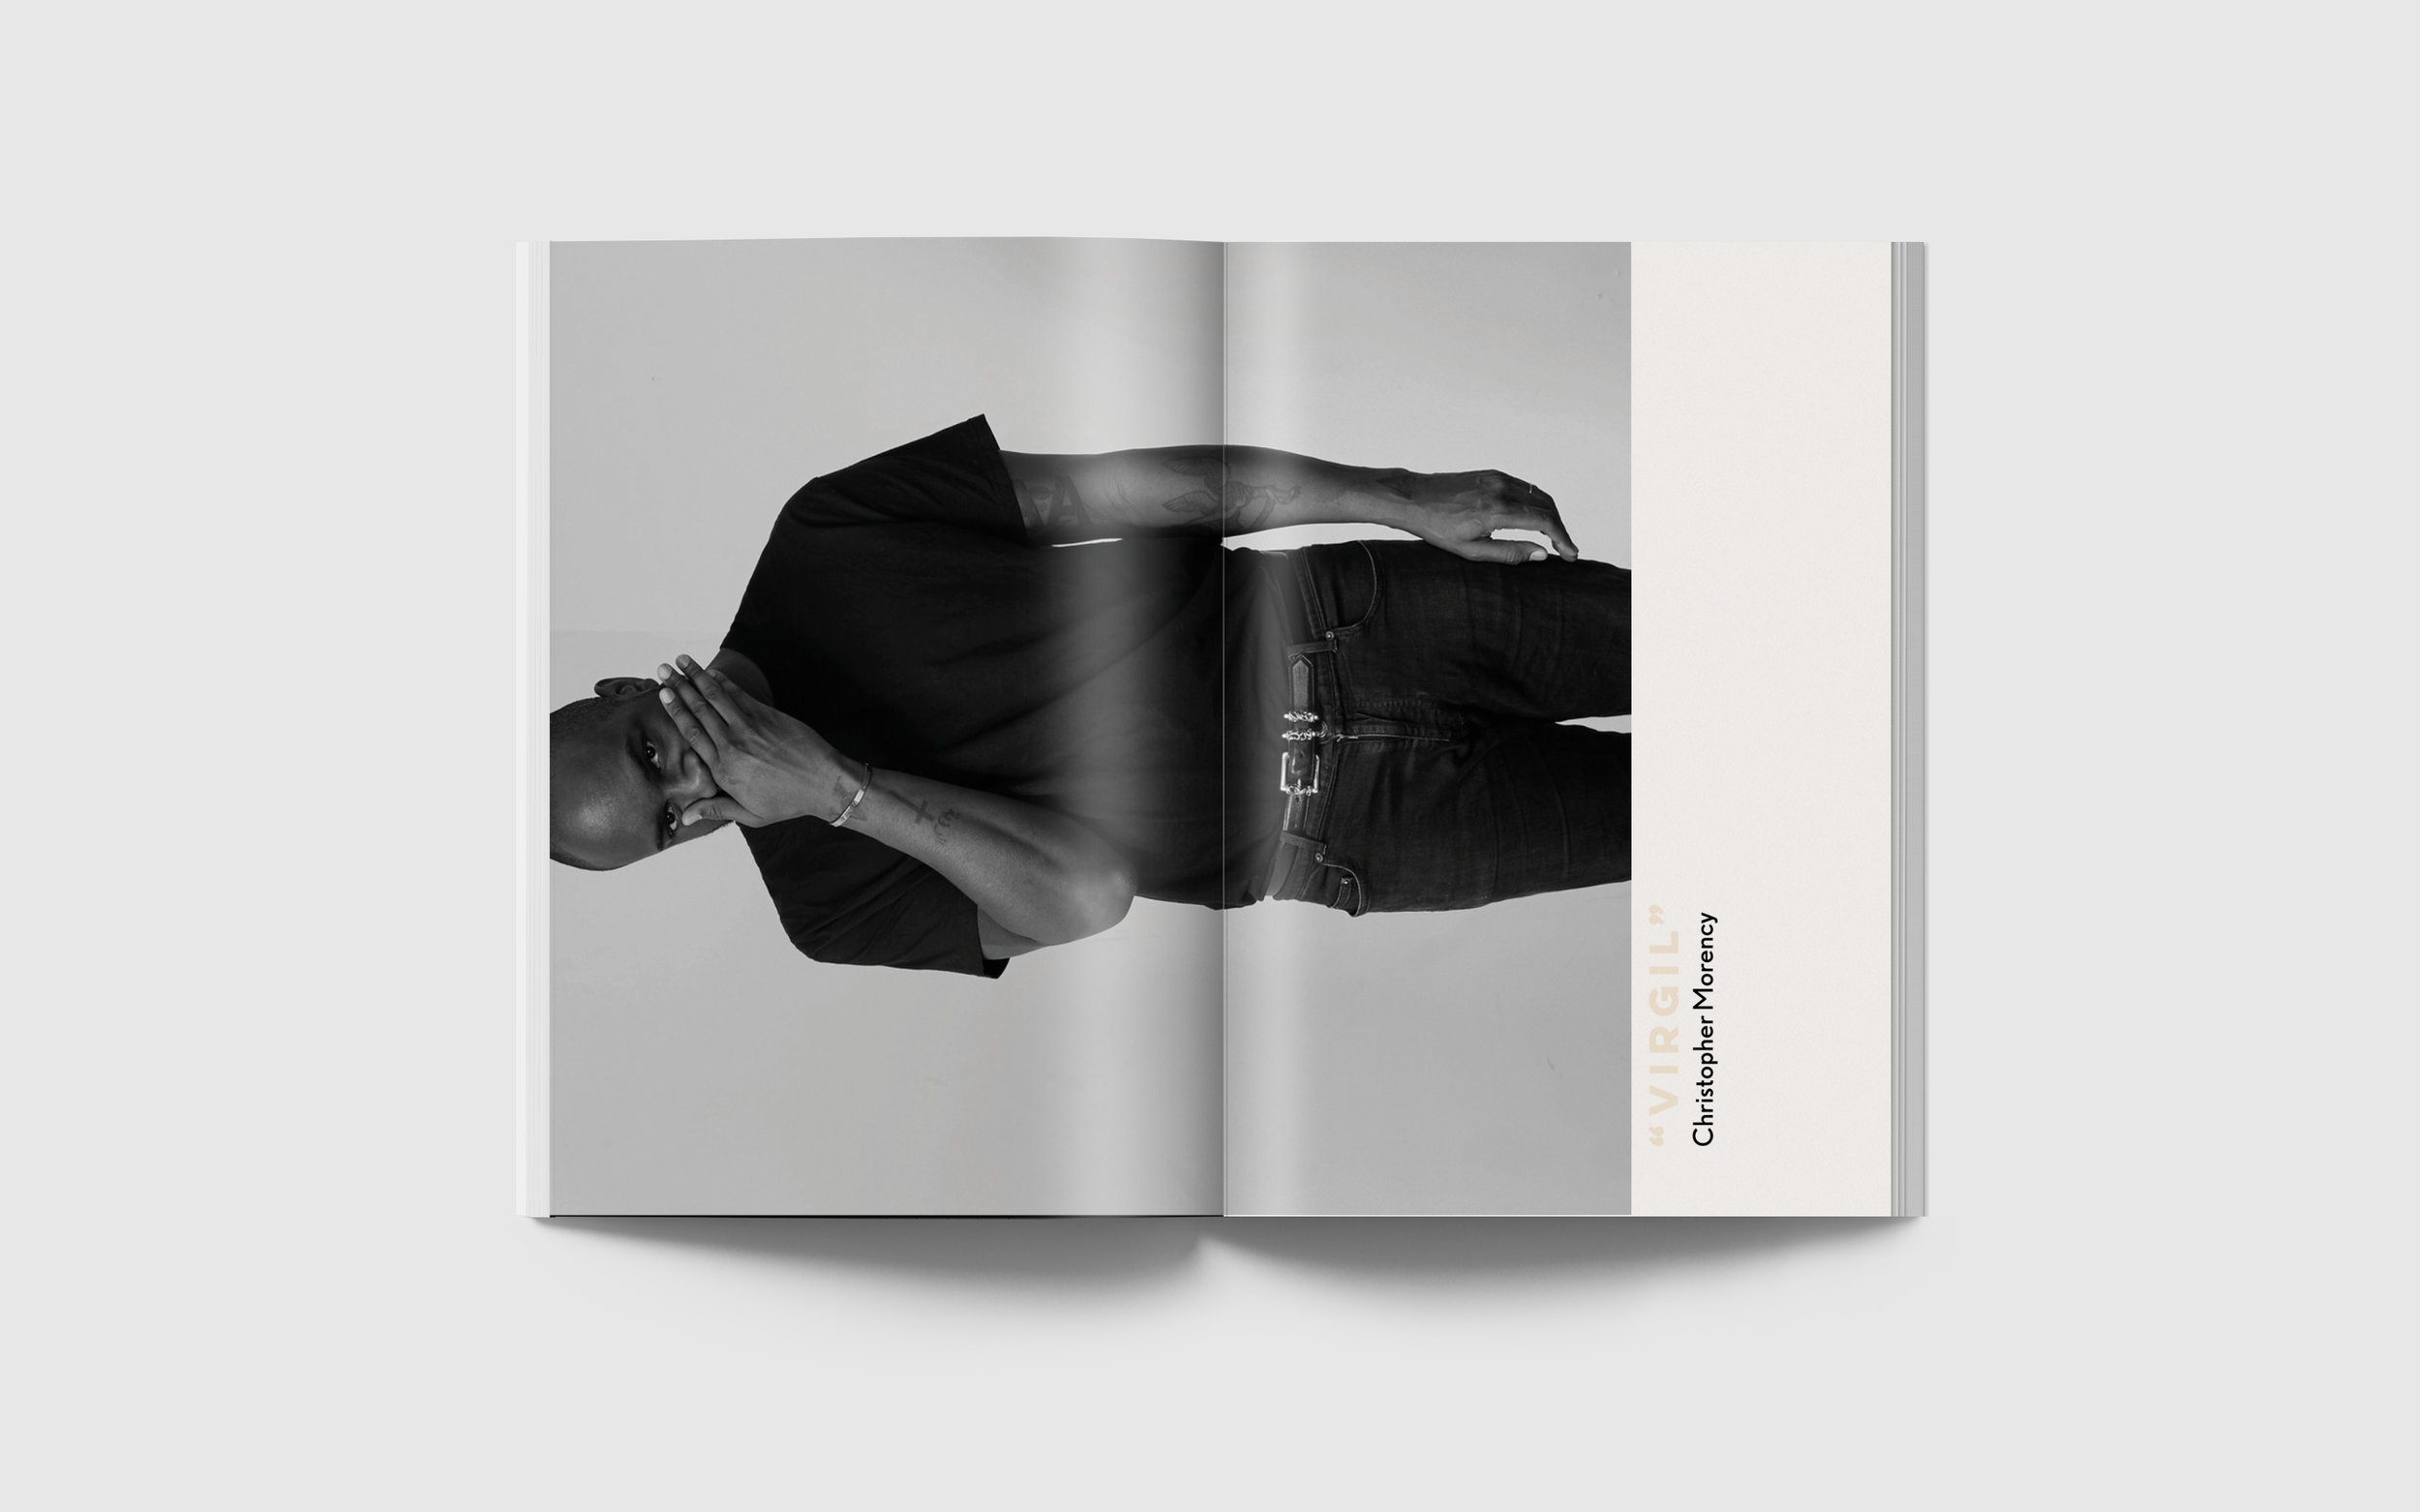 NEST Magazine redesign designed in collaboration with  Greyson Kelly , featuring an article about designer Virgil Abloh.